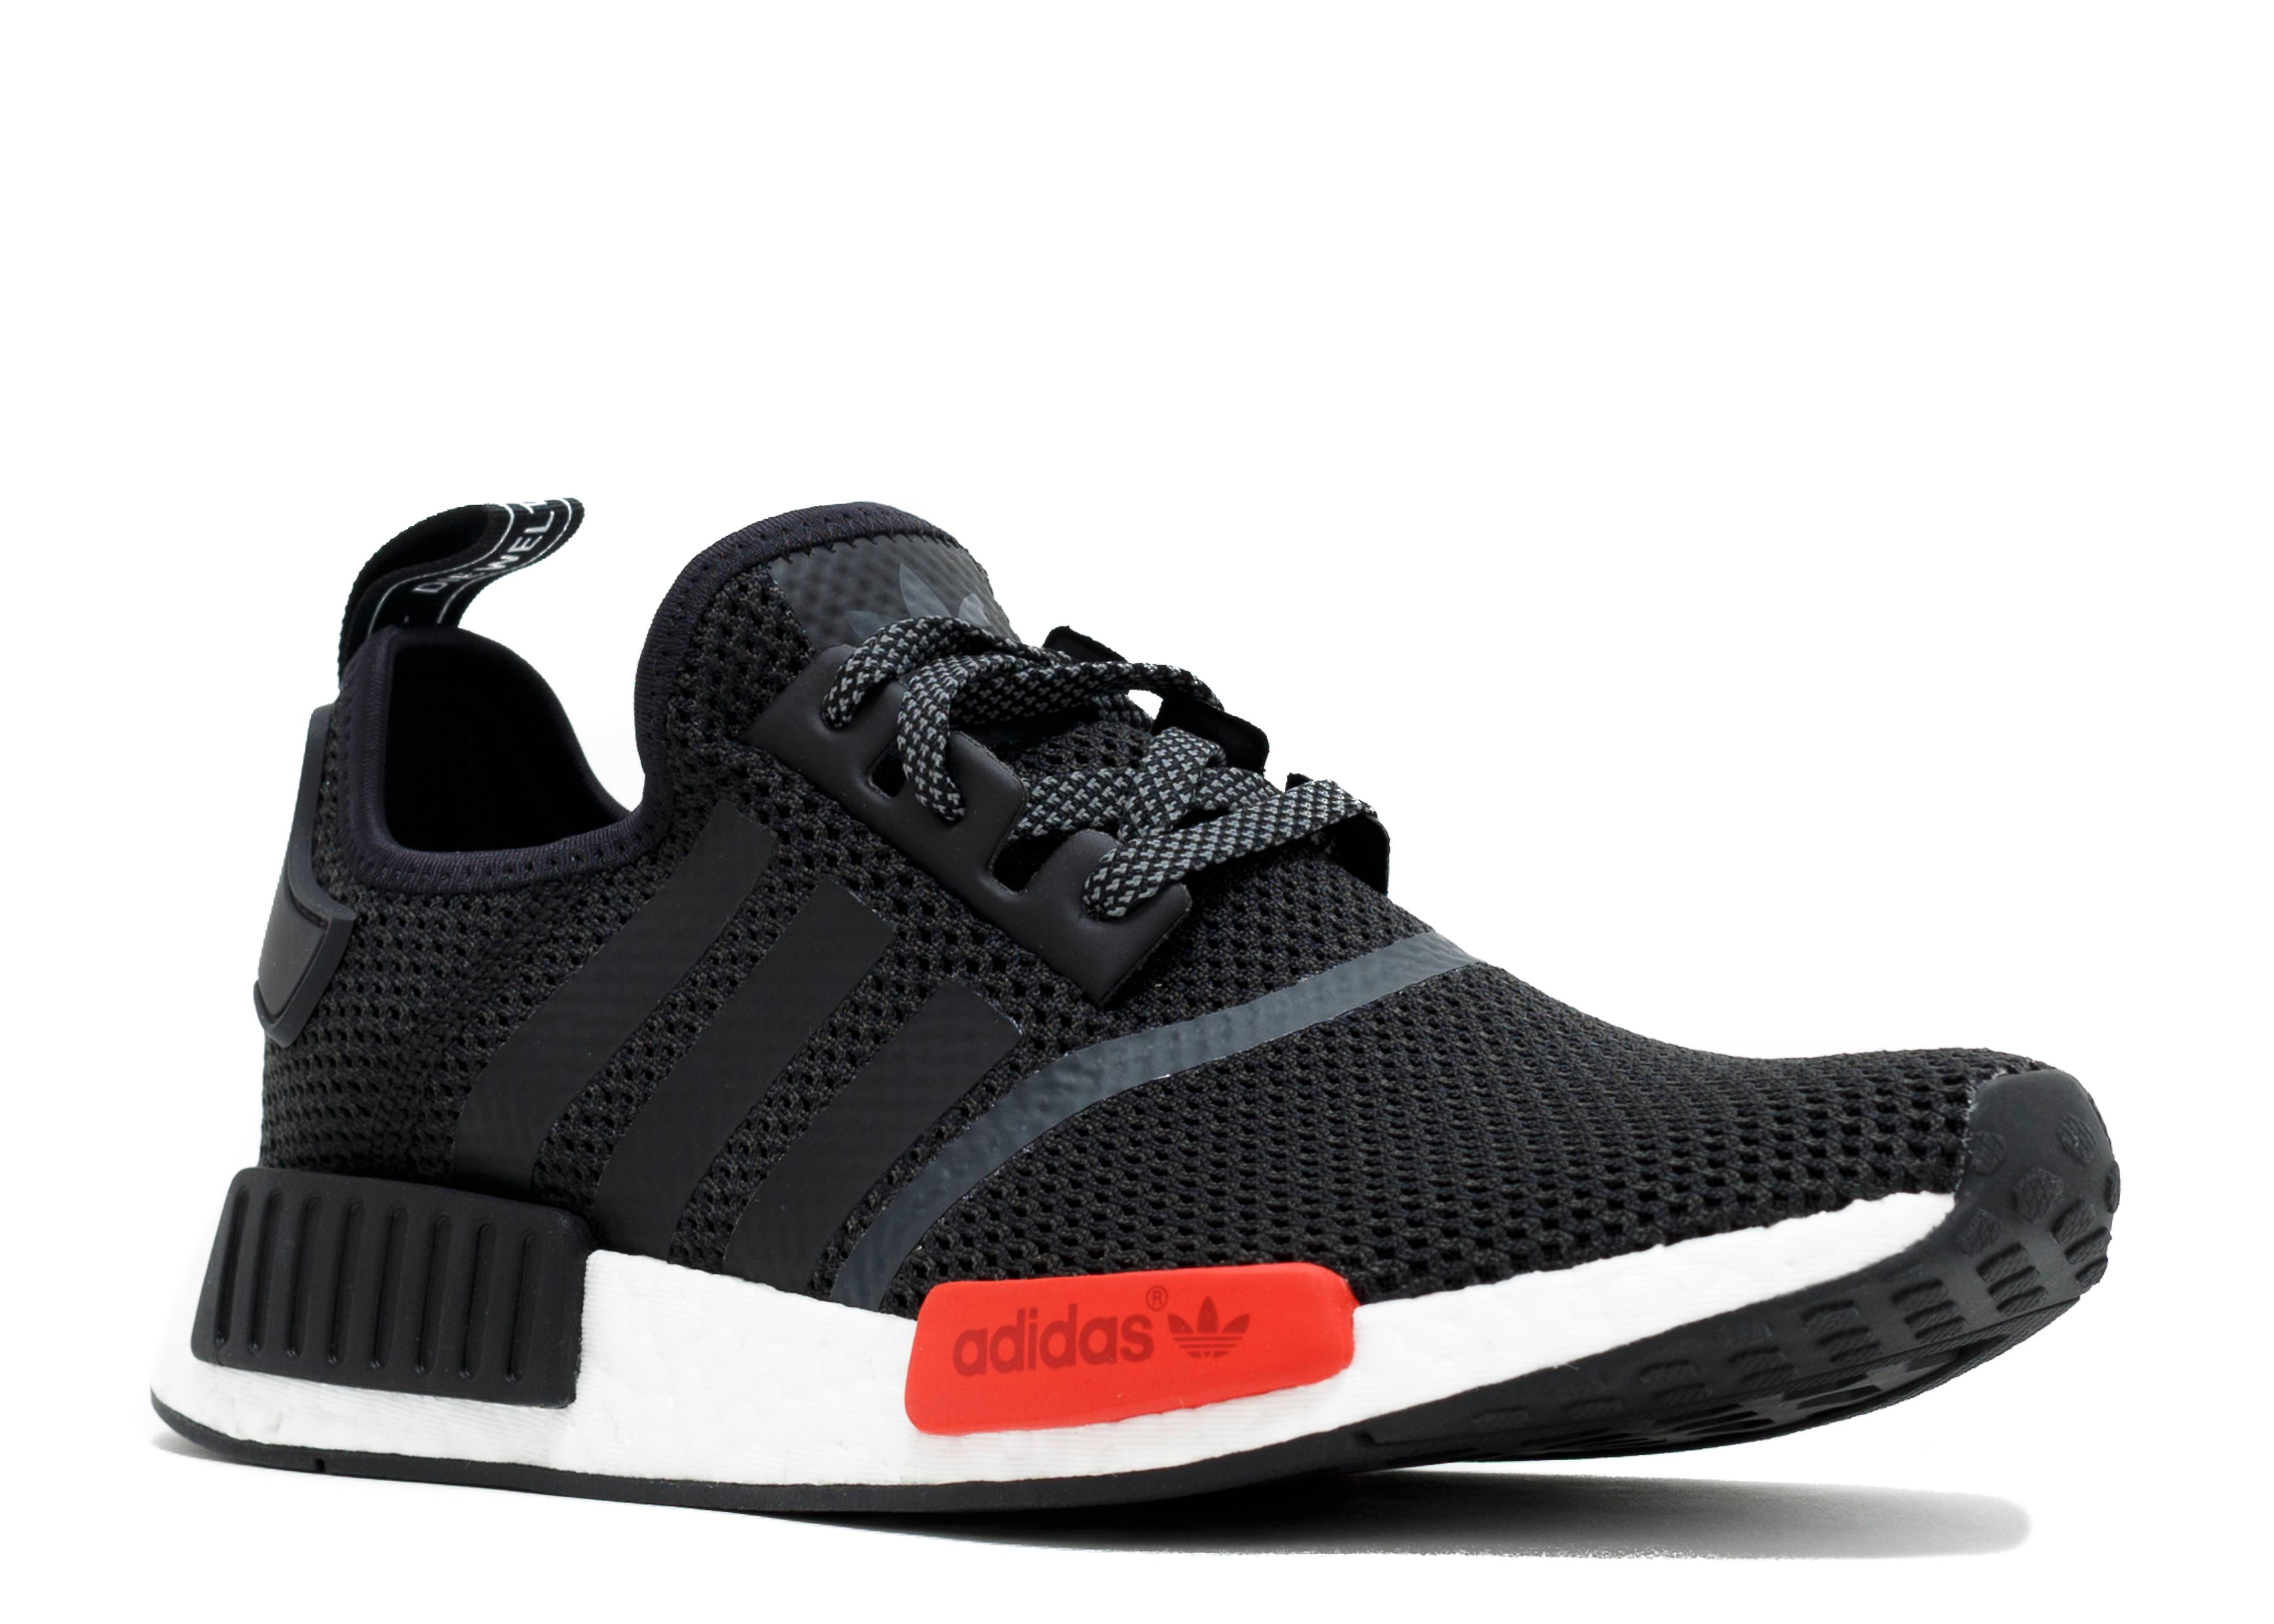 Clothing Shoes Accessories Athletic Shoes Adidas Nmd Boost Nmd